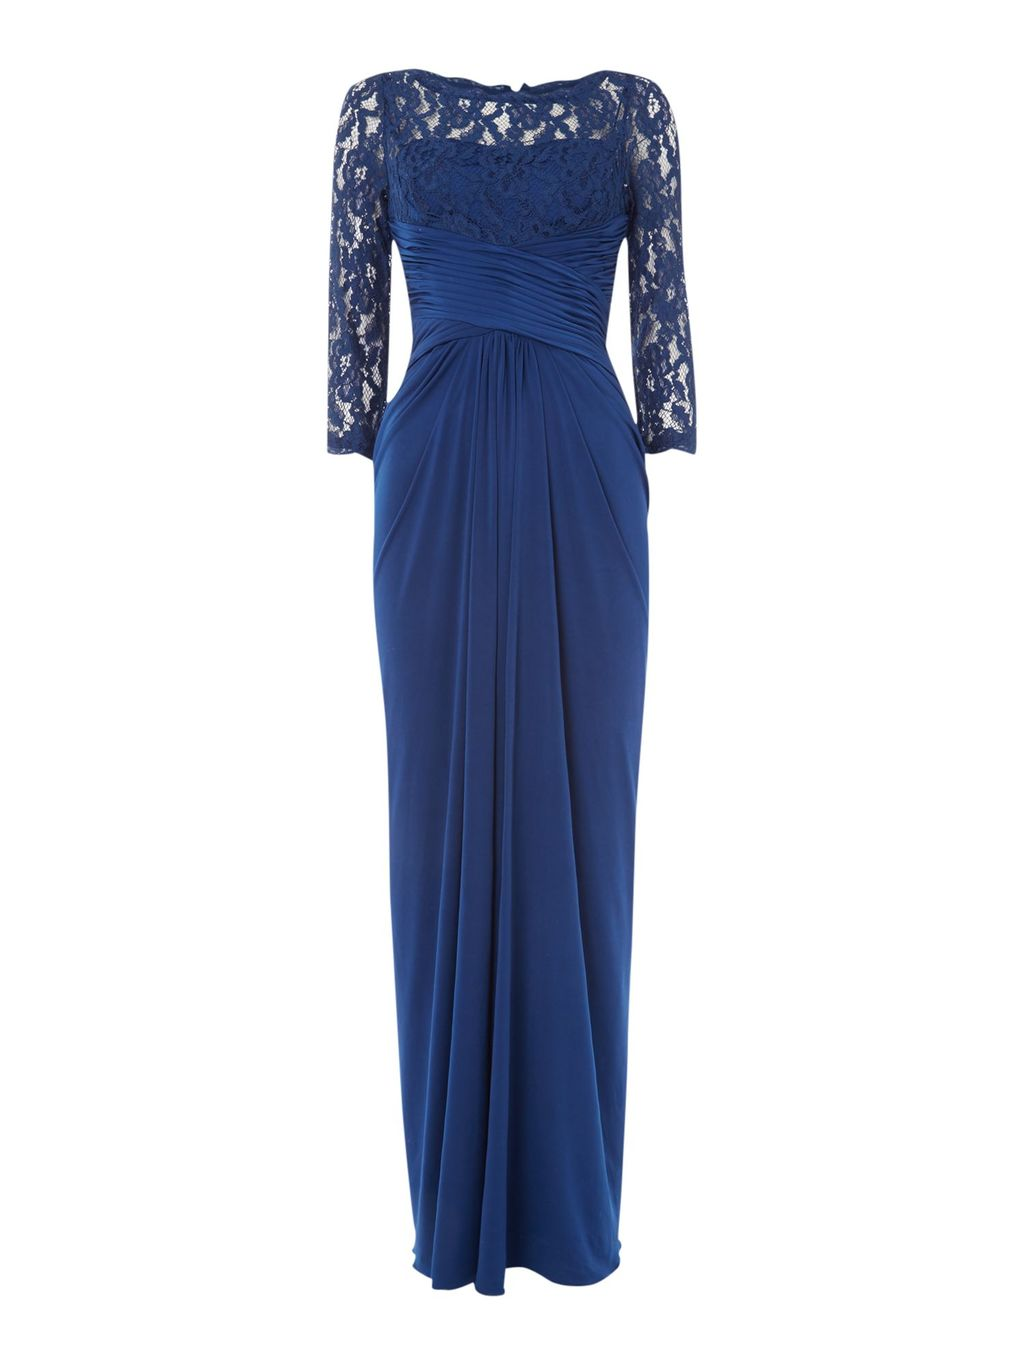 Rouched Waist Gown With Lace Top And 3/4 Sleeves, Navy - style: ballgown; pattern: plain; waist detail: flattering waist detail; bust detail: subtle bust detail; predominant colour: royal blue; occasions: evening; length: floor length; fit: body skimming; fibres: polyester/polyamide - stretch; neckline: crew; hip detail: subtle/flattering hip detail; sleeve length: 3/4 length; sleeve style: standard; pattern type: fabric; texture group: jersey - stretchy/drapey; embellishment: lace; shoulder detail: sheer at shoulder; season: s/s 2016; wardrobe: event; embellishment location: top